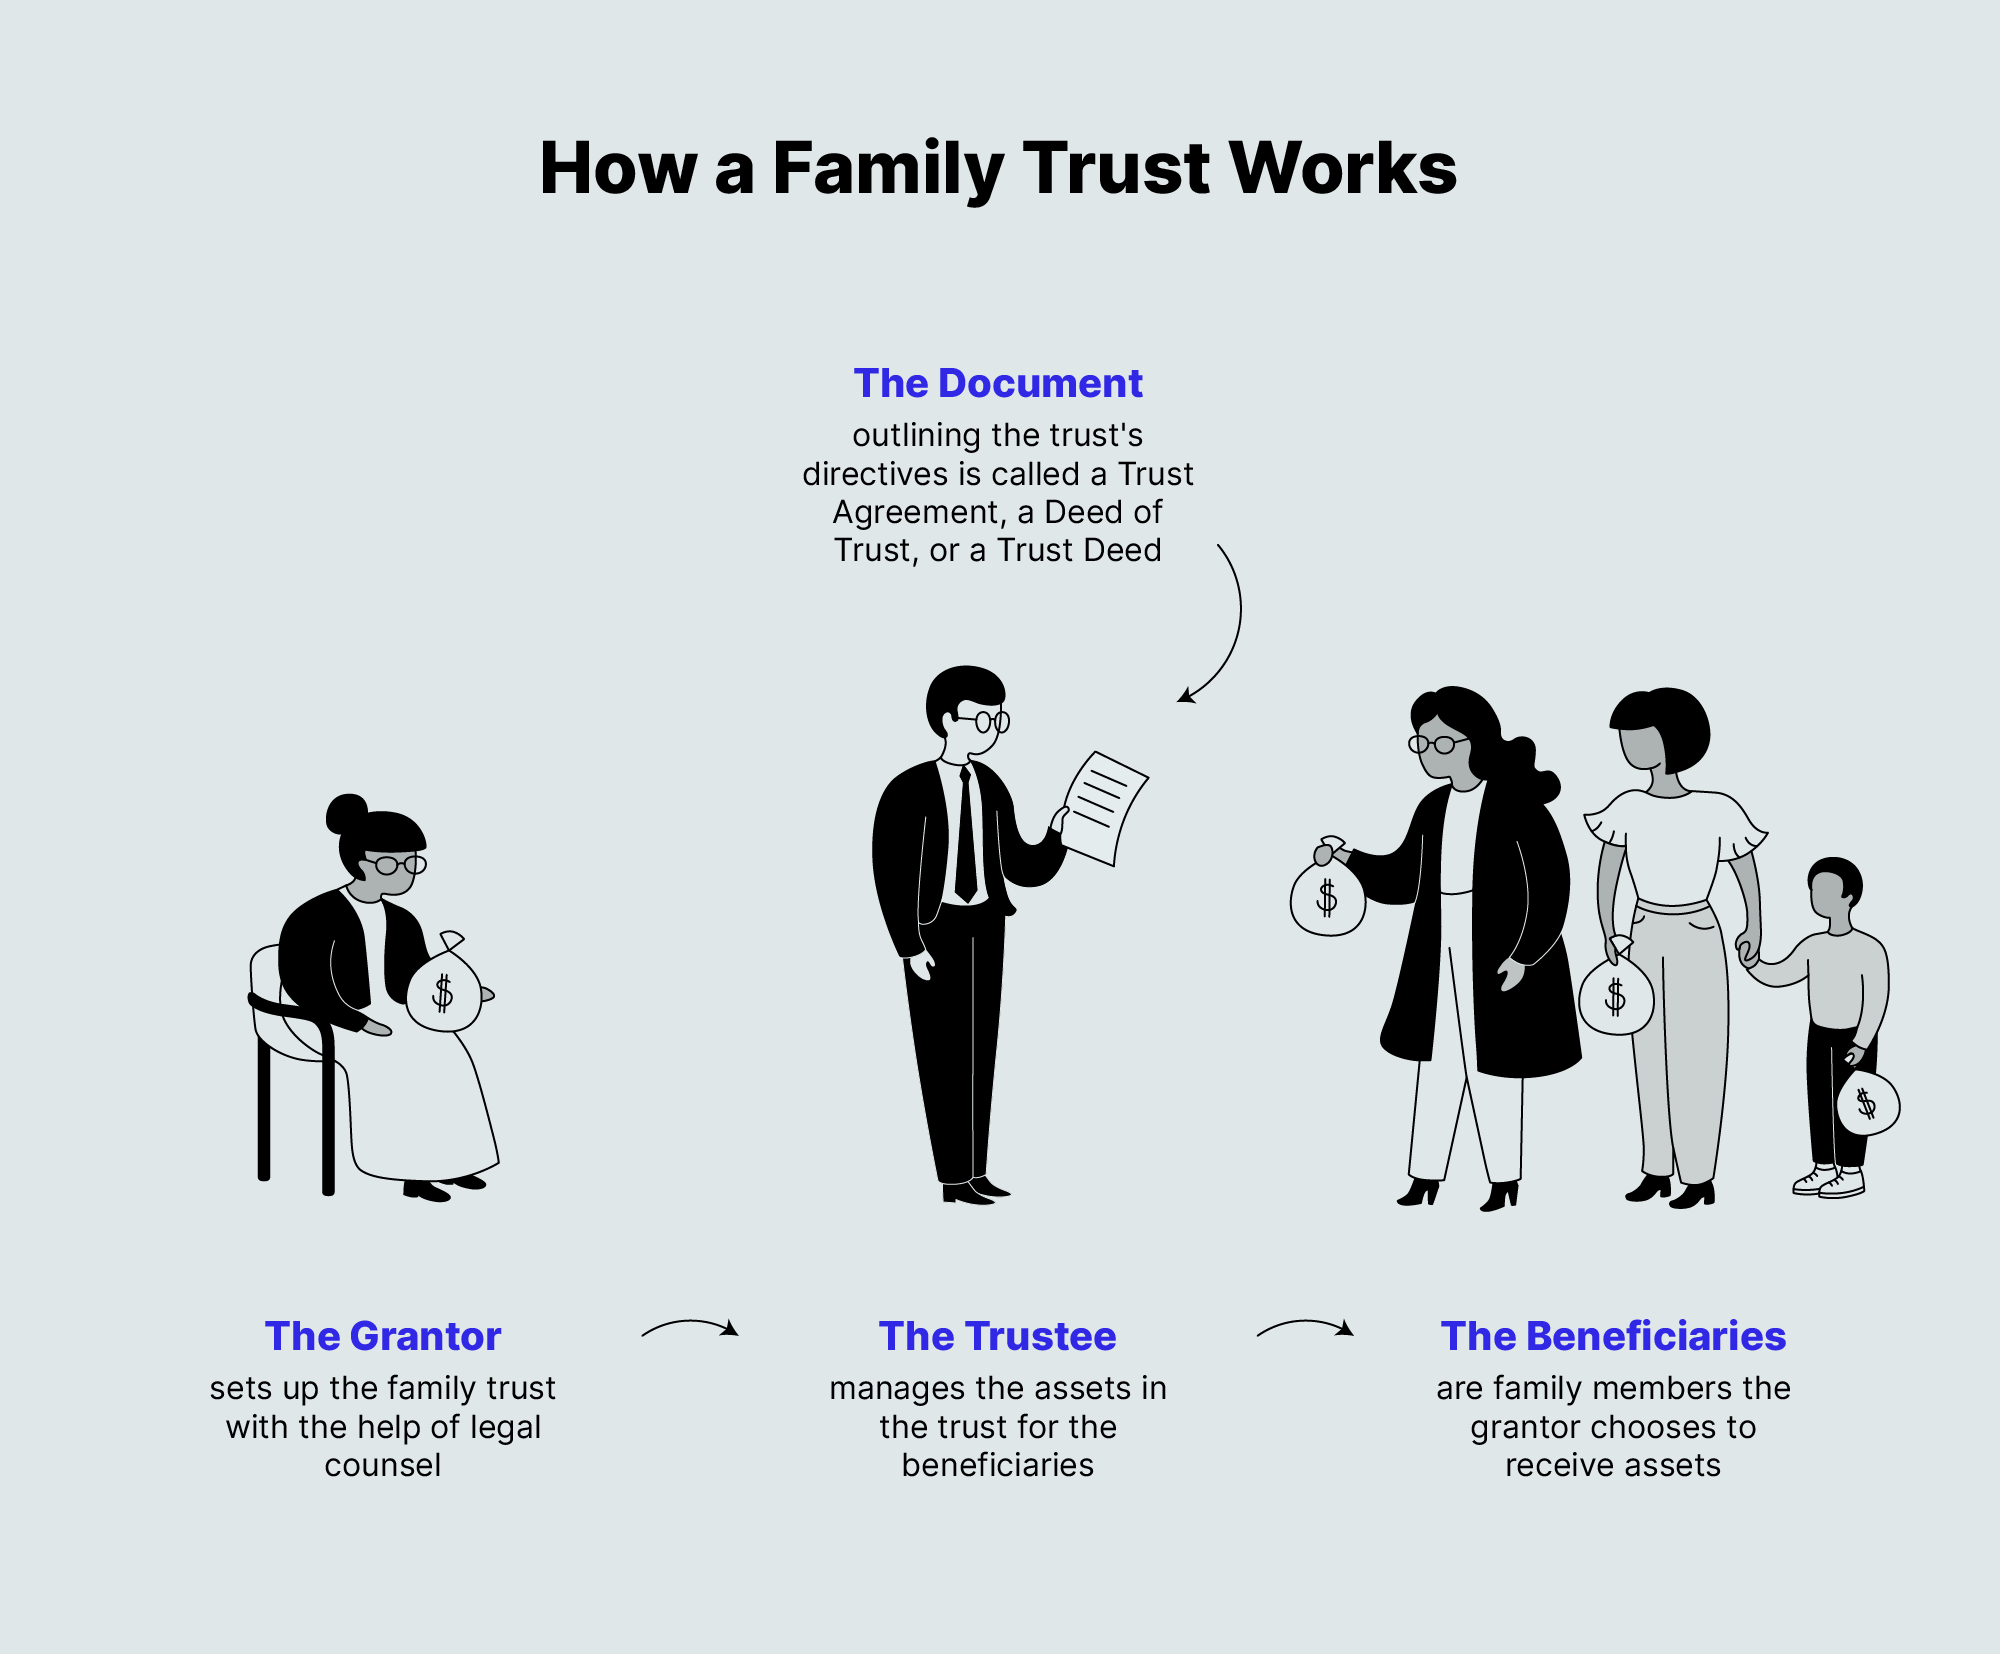 How a Family Trust Works